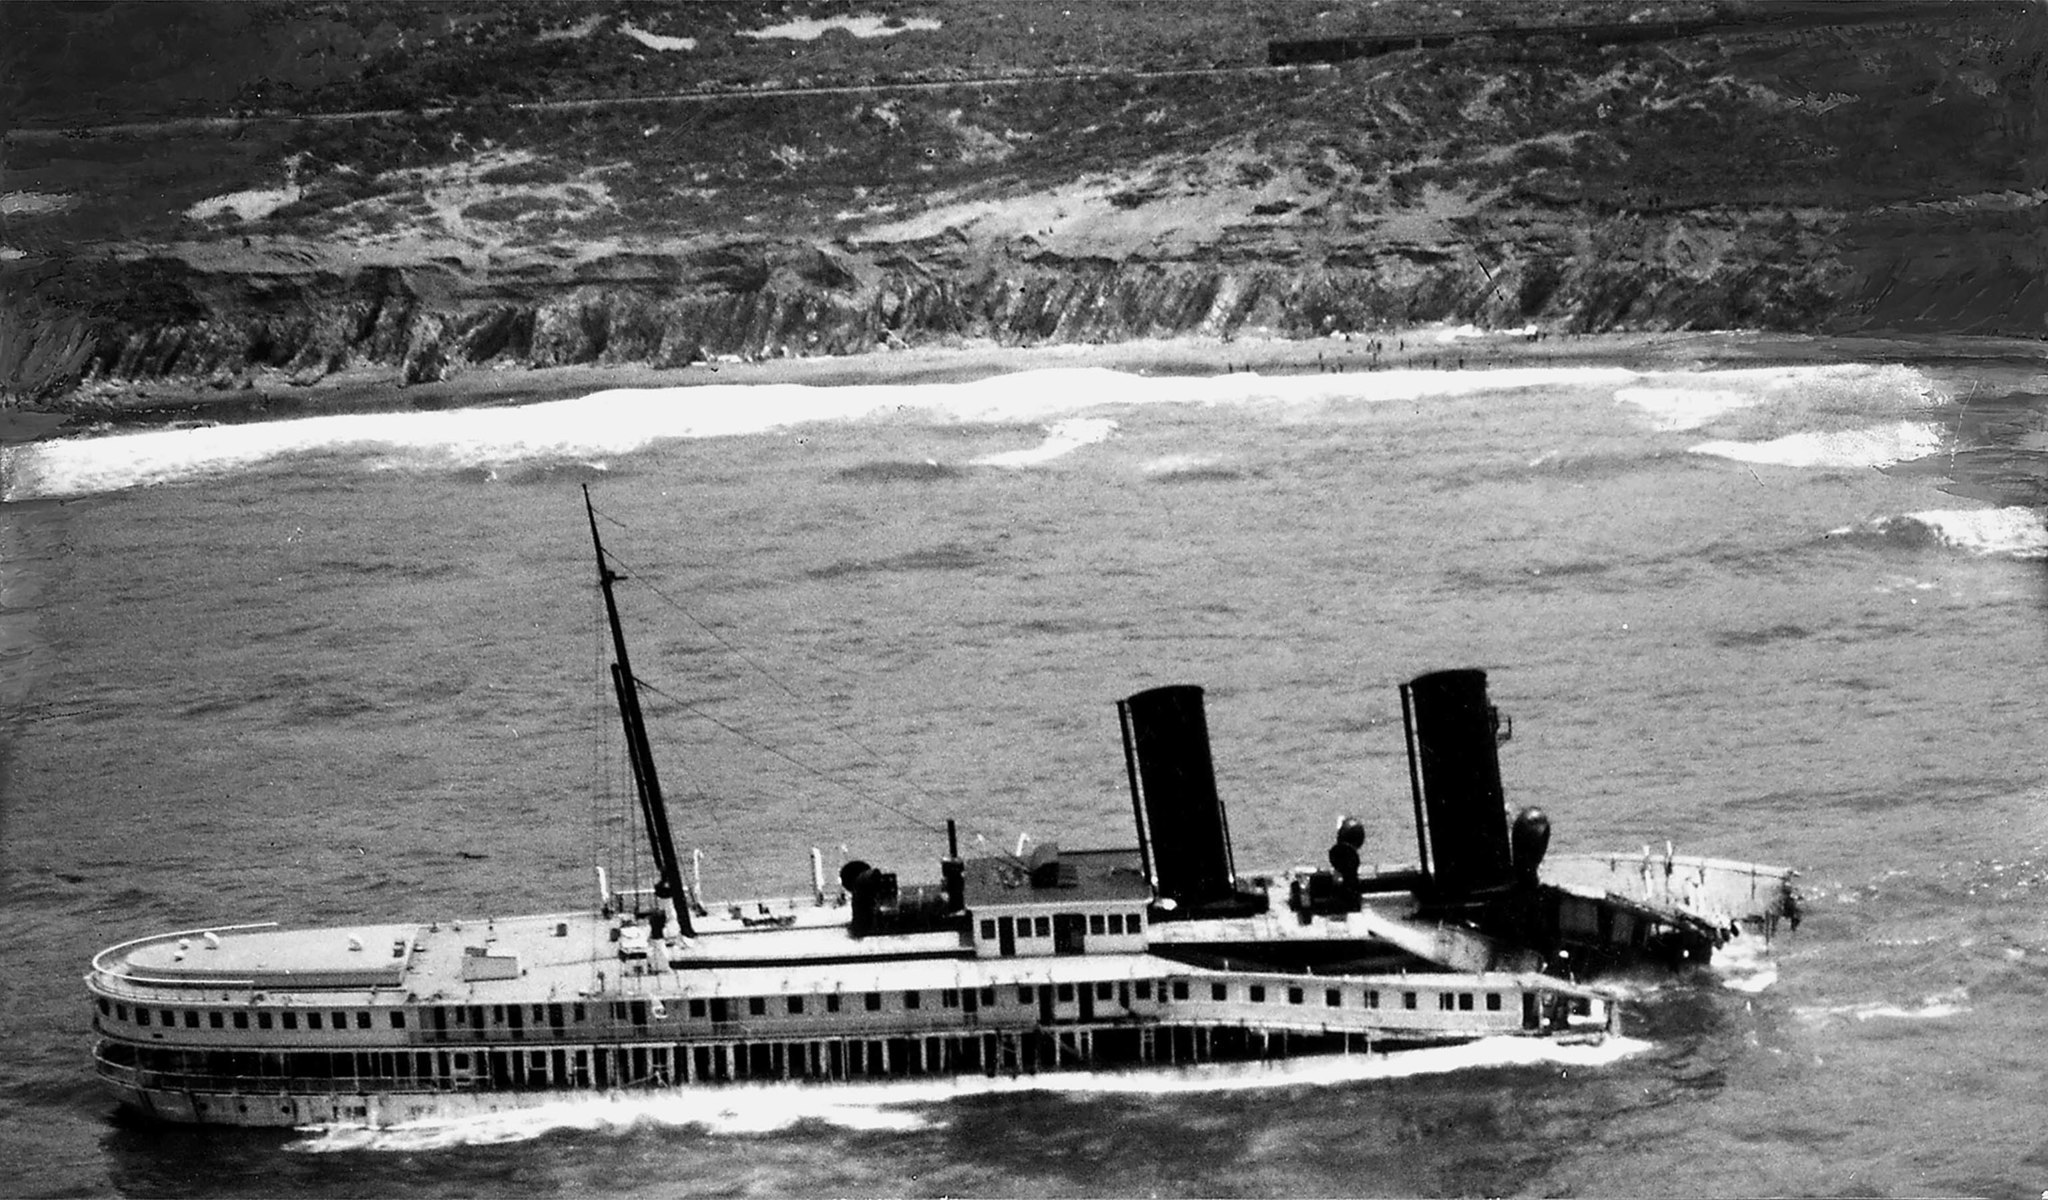 June 1931: Aerial photo of wreckage of S.S. Harvard after May 30, 1931 grounding in fog at Point Arg